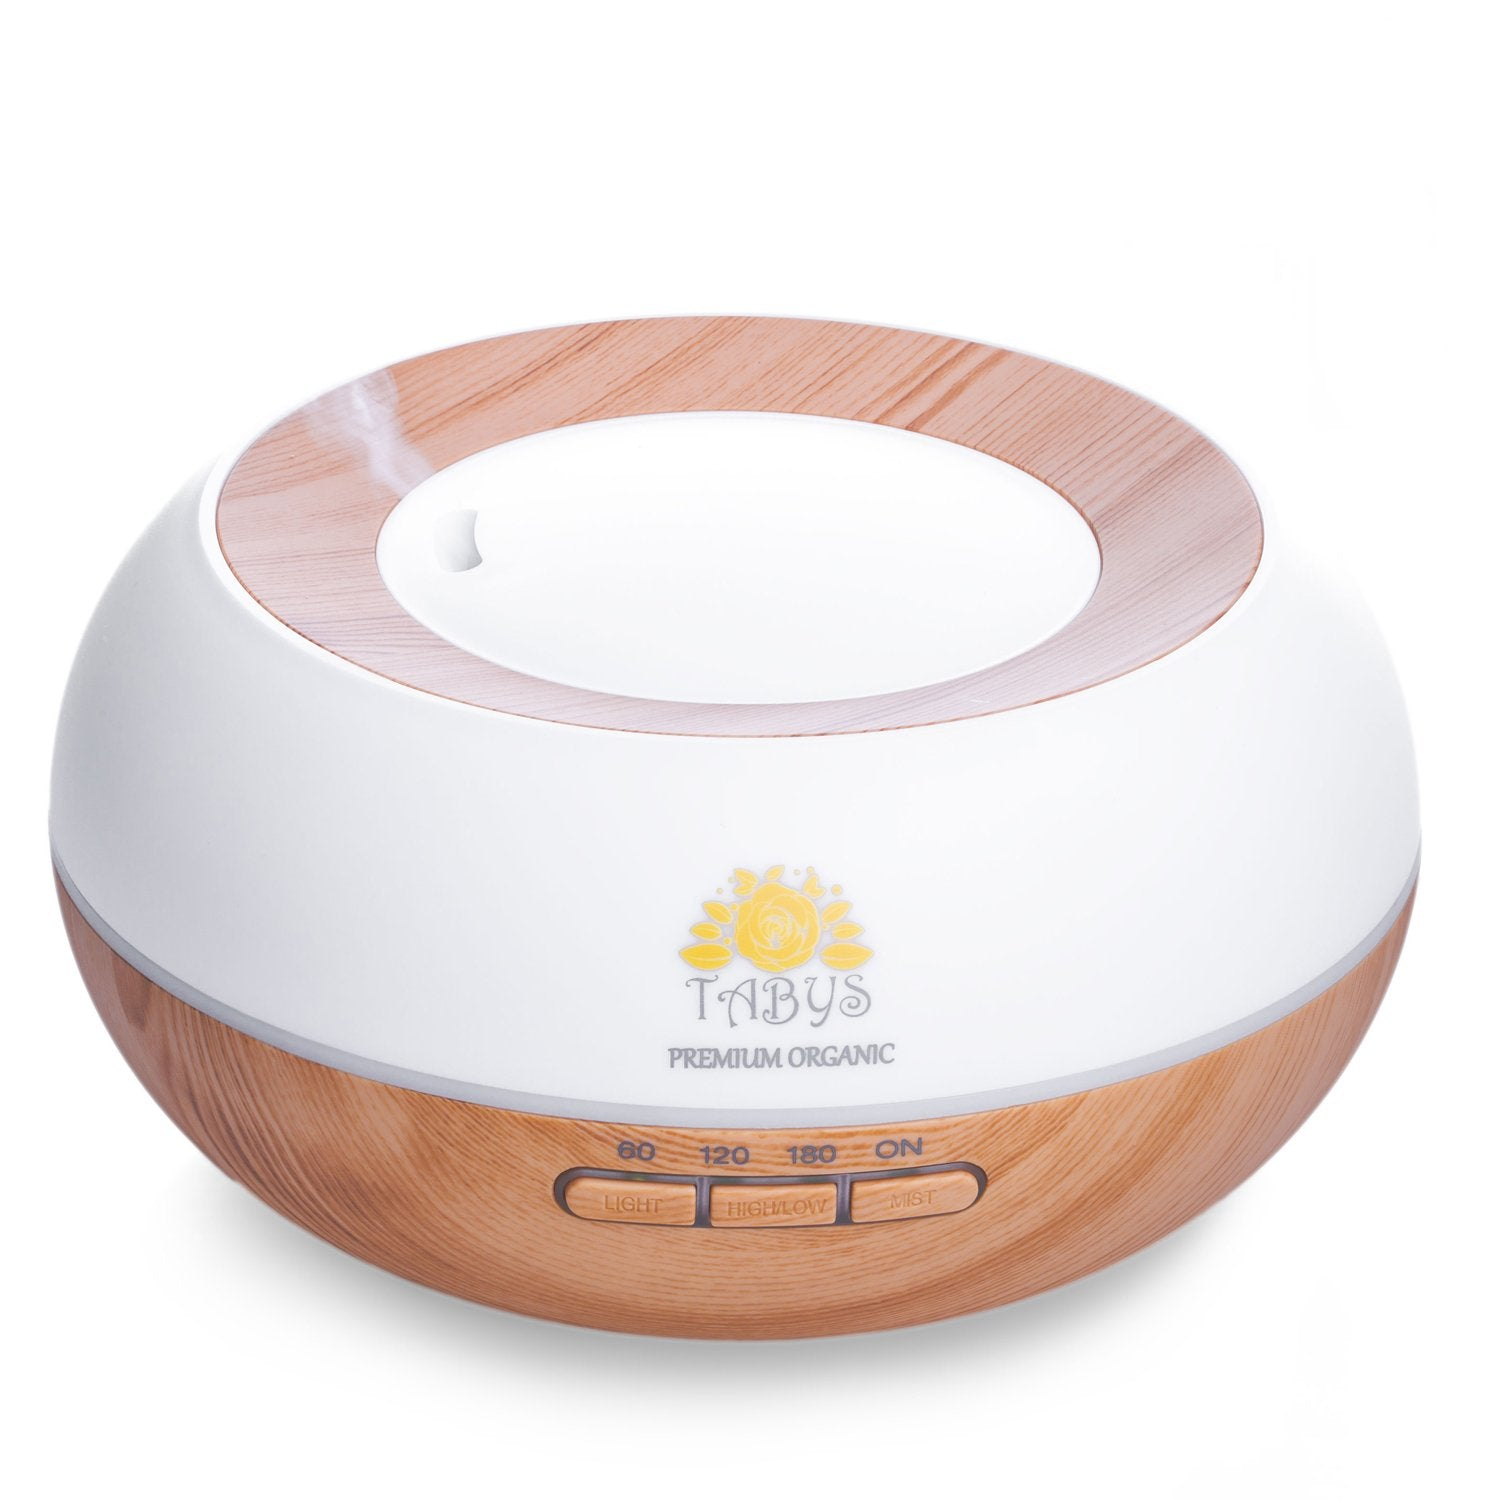 Aroma Diffuser with 30ml of Lavender Essential Oil